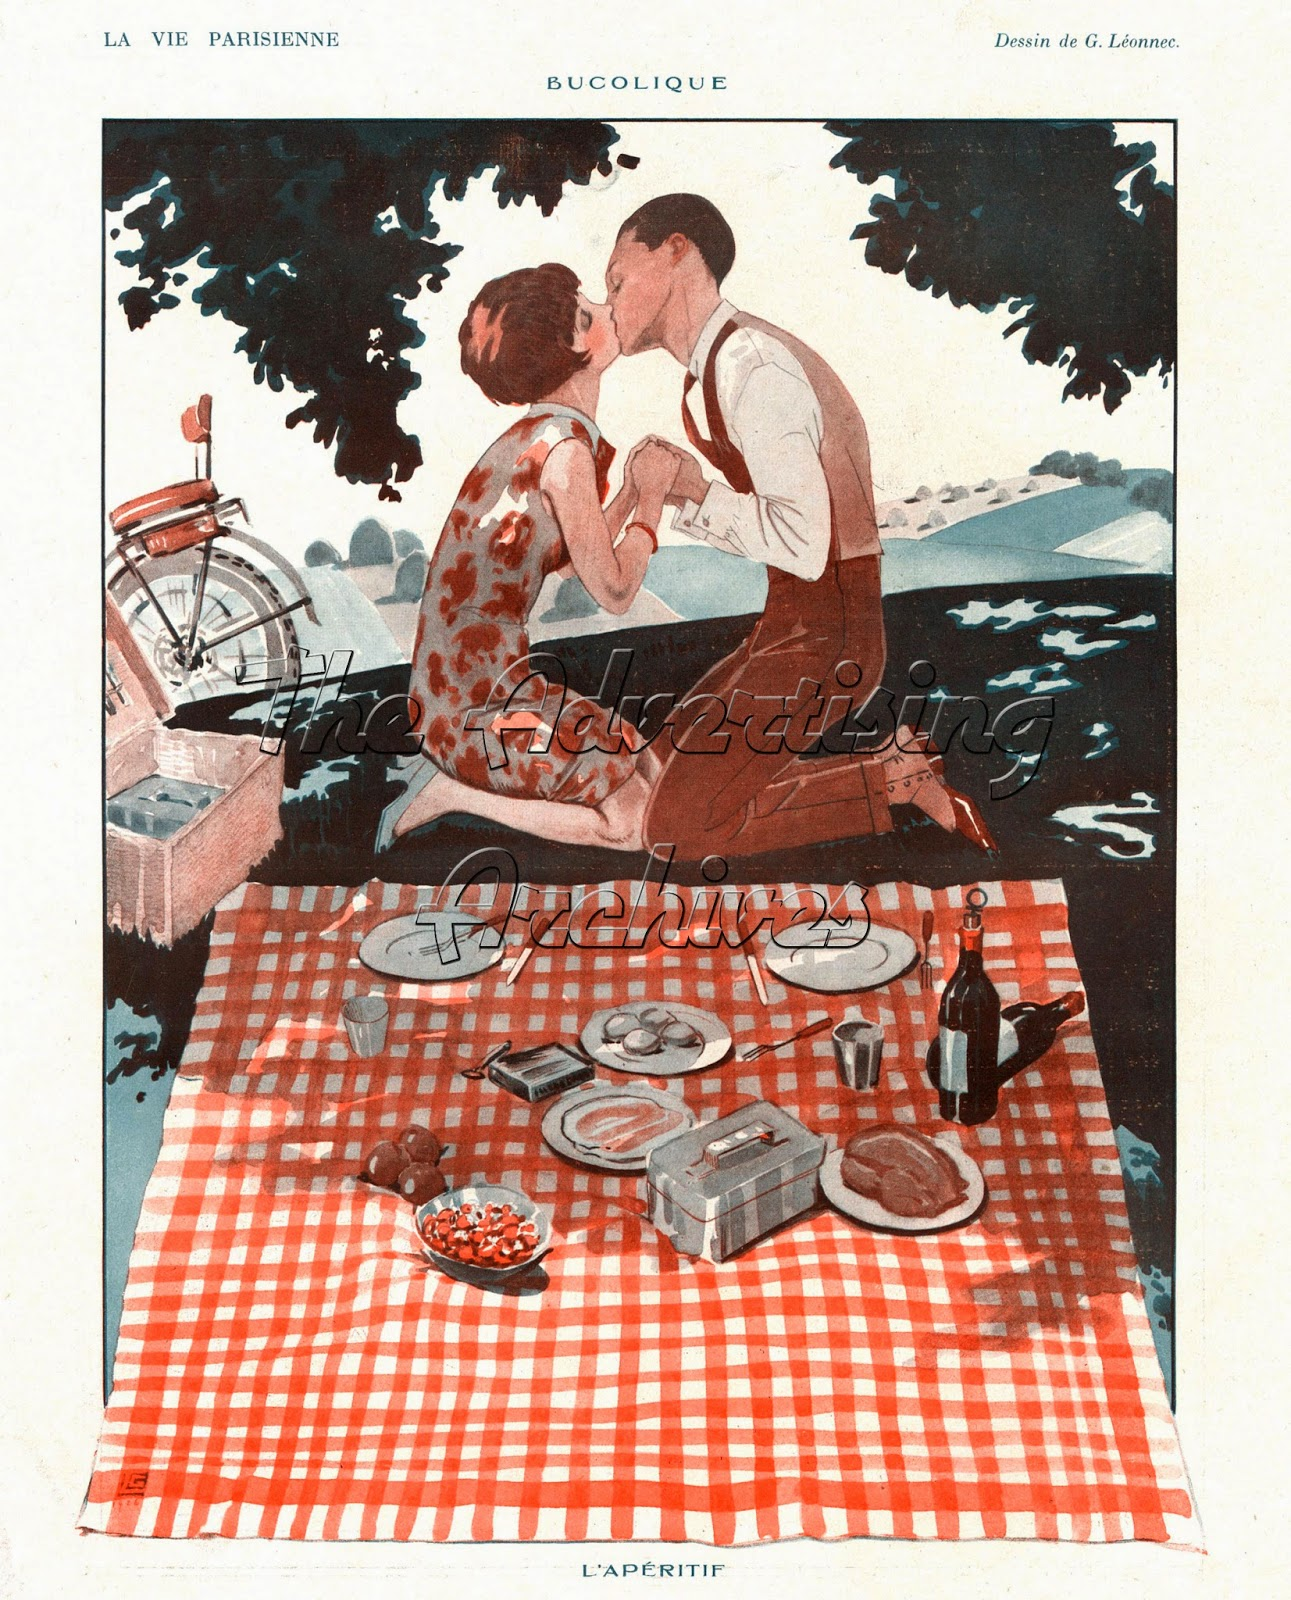 http://www.advertisingarchives.co.uk/index.php?service=search&action=do_quick_search&language=en&q=picnics